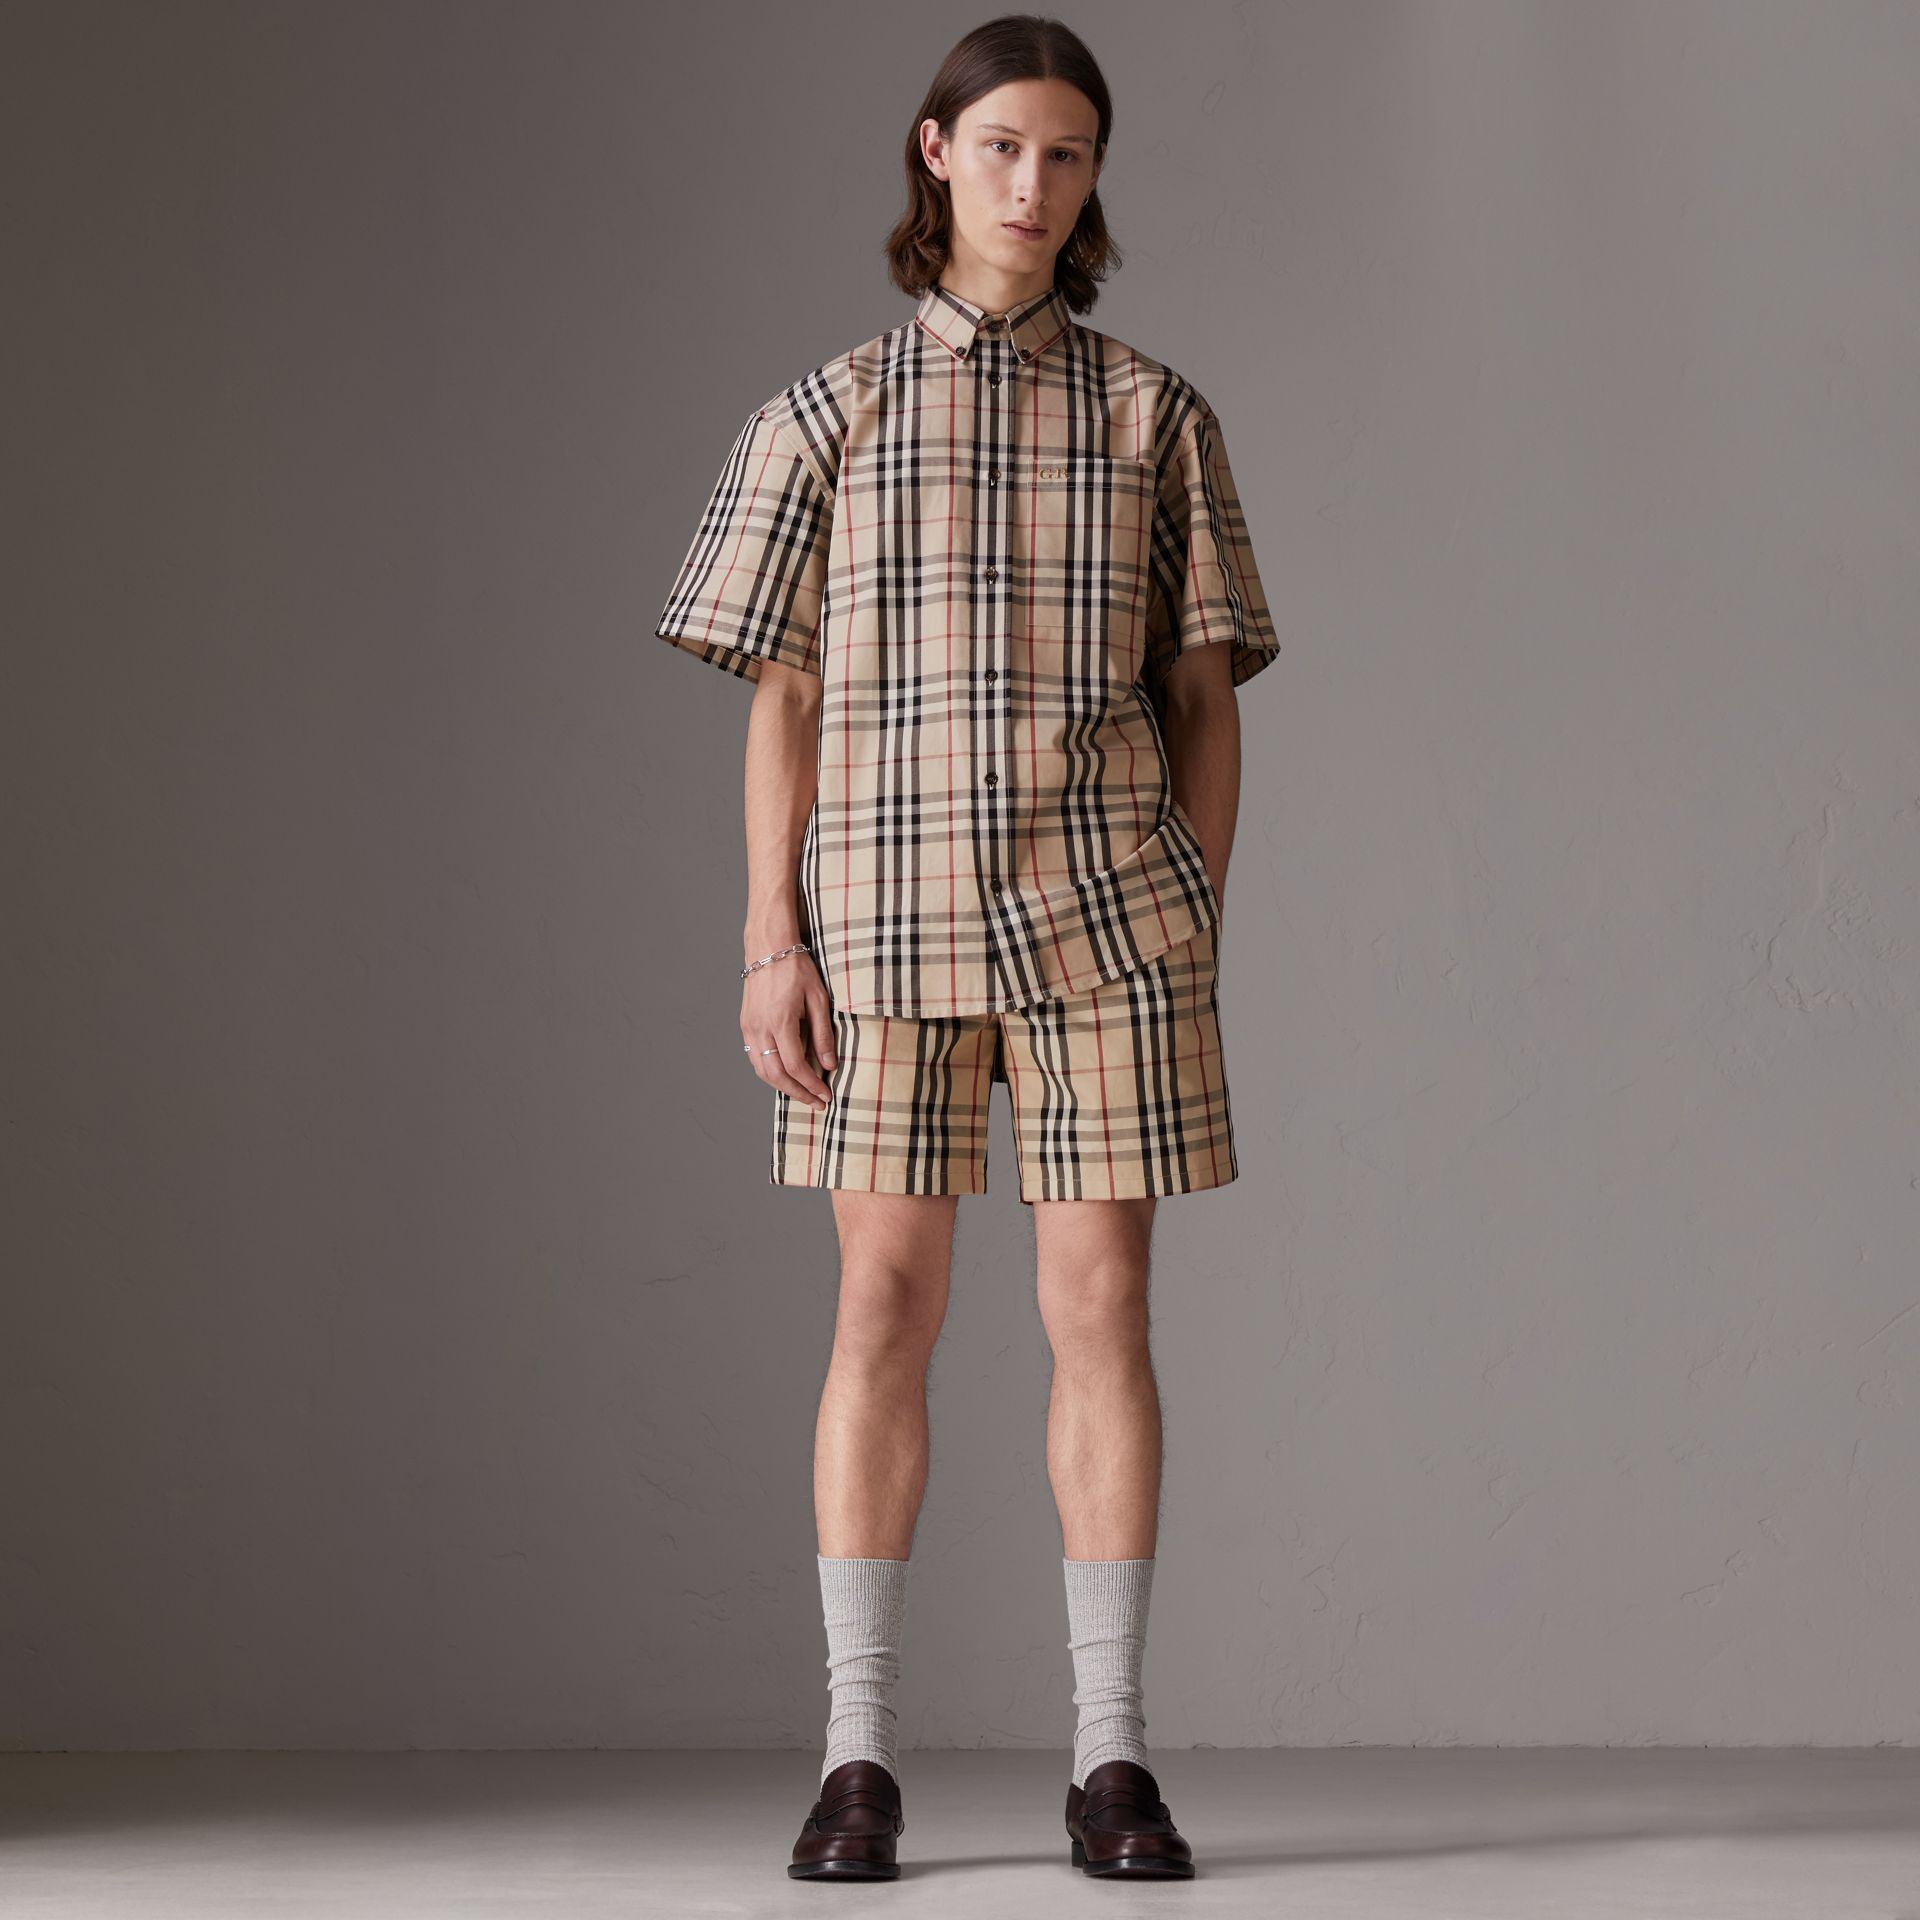 Gosha x Burberry Short-sleeve Check Shirt in Honey - Men | Burberry United States - gallery image 2